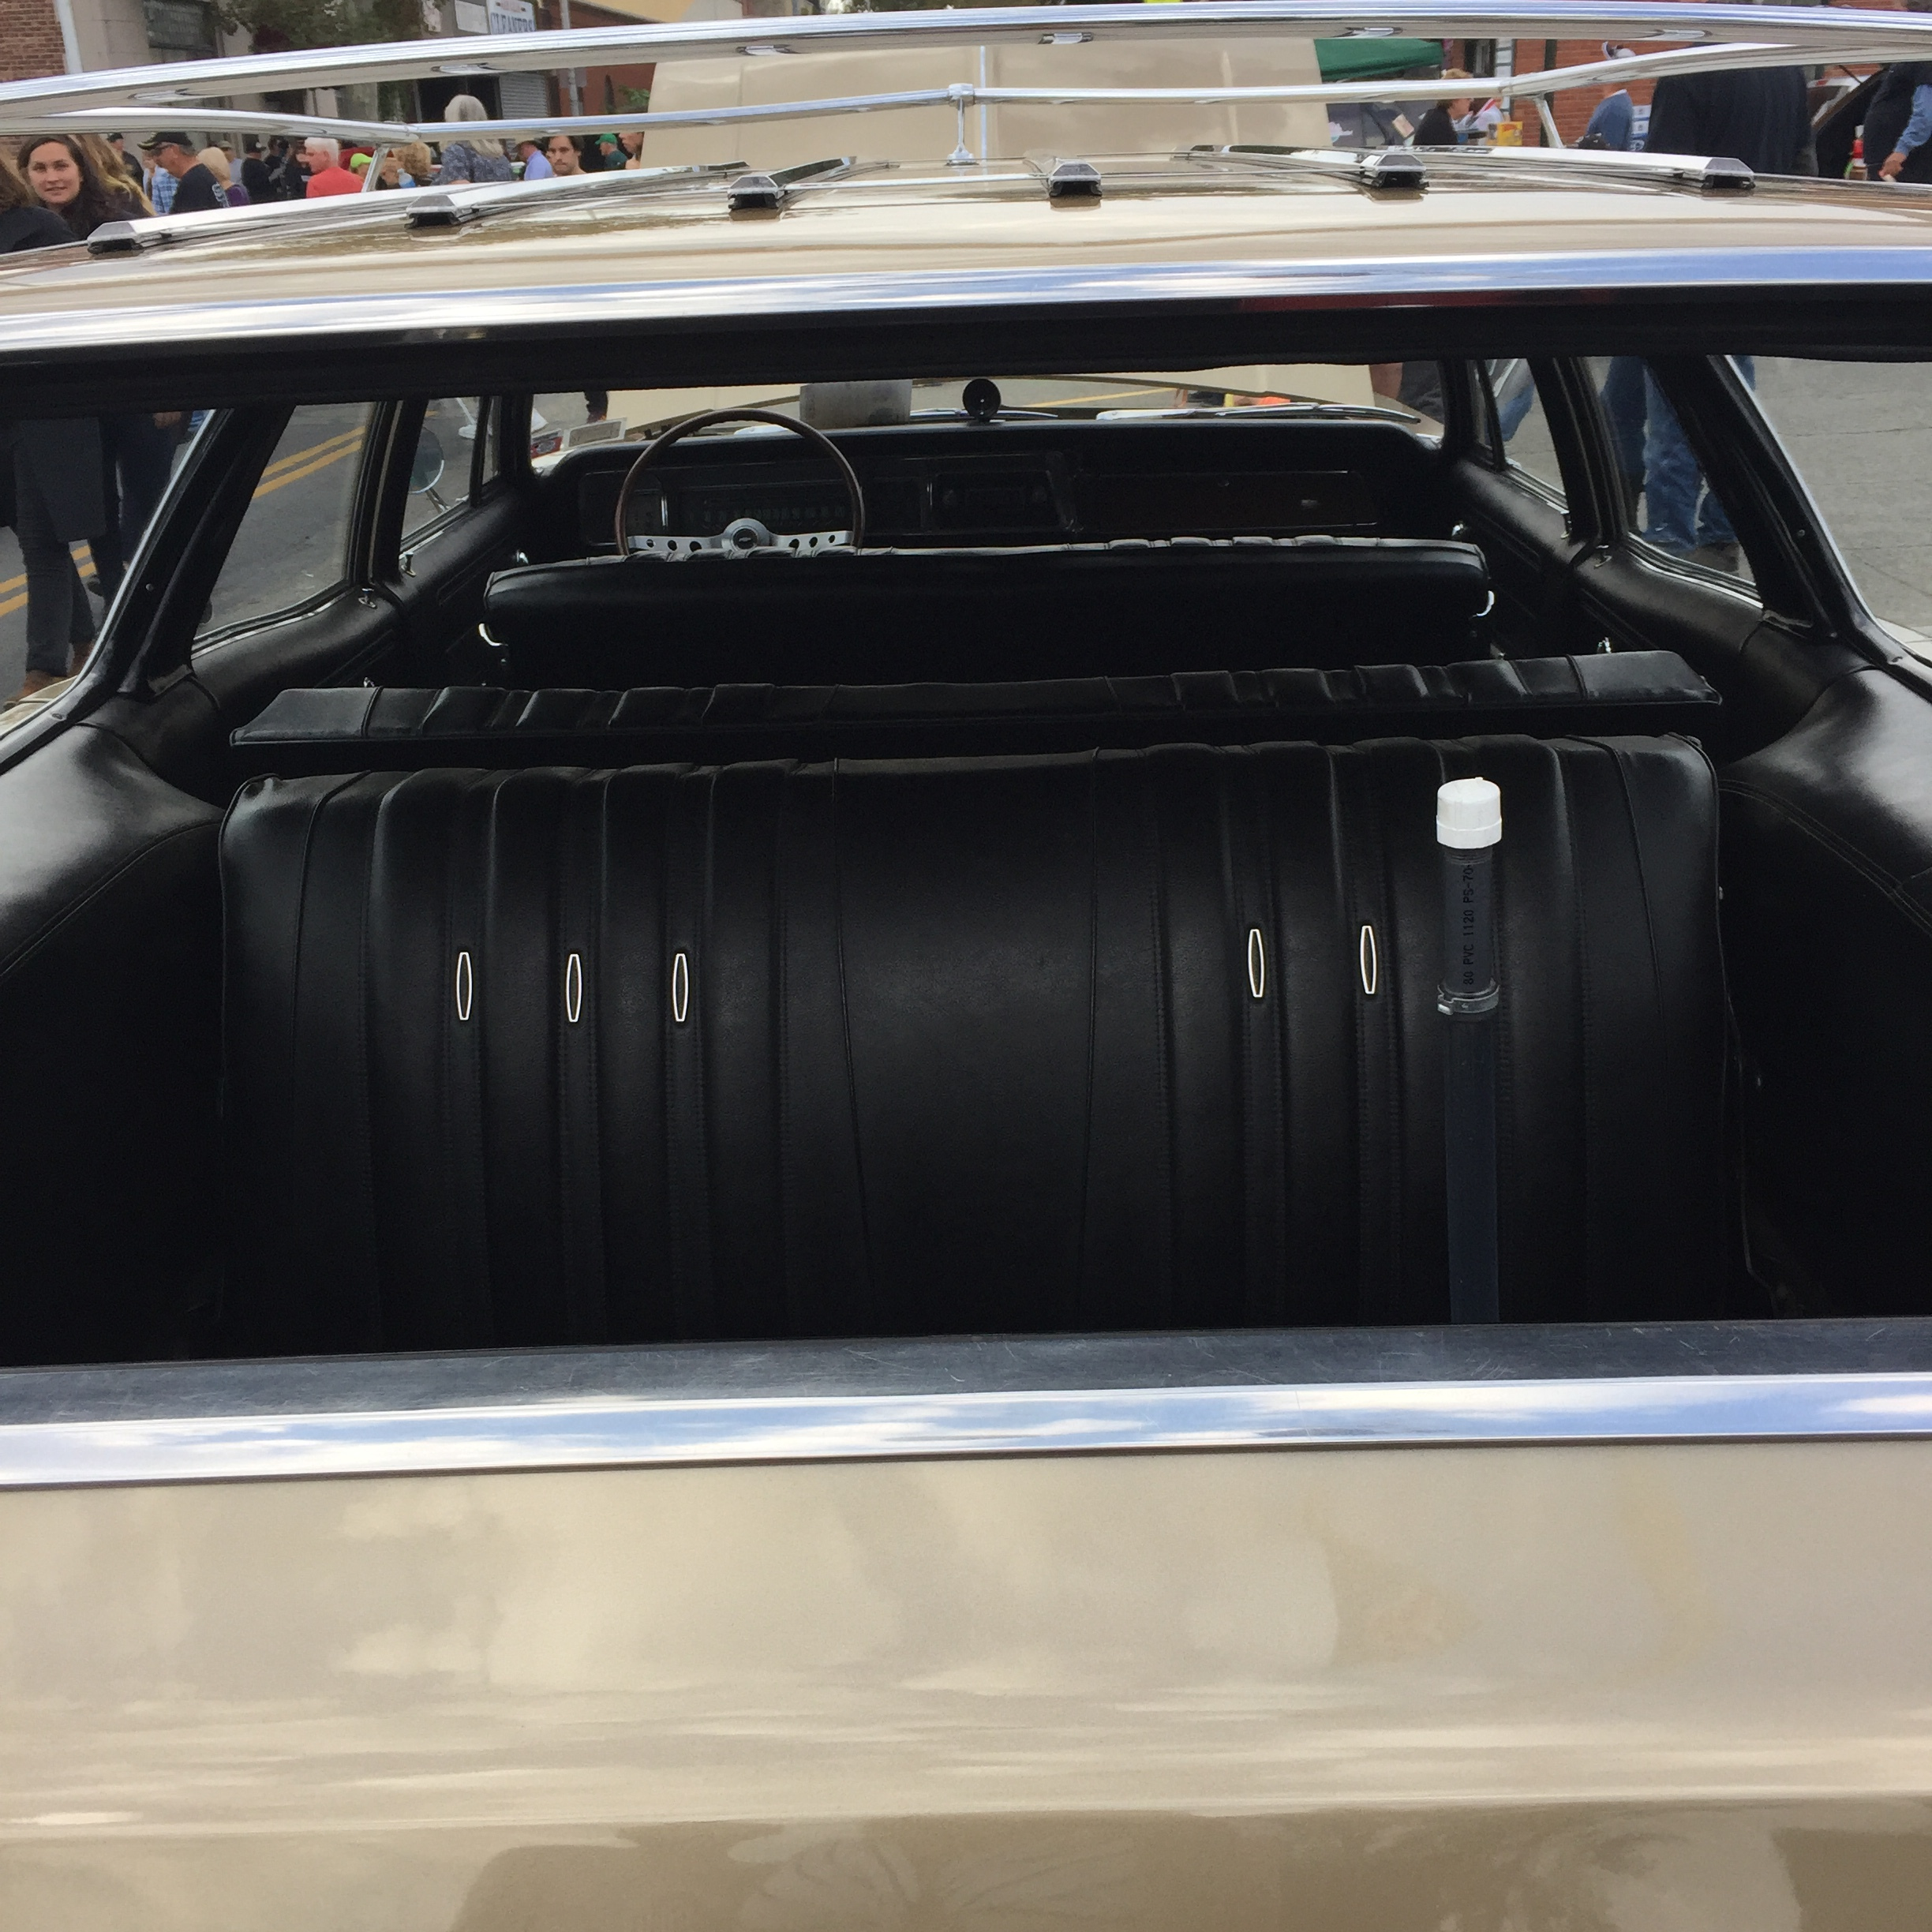 Remember the third seat facing backwards in the Chevy Caprice? Complete with seat belts.